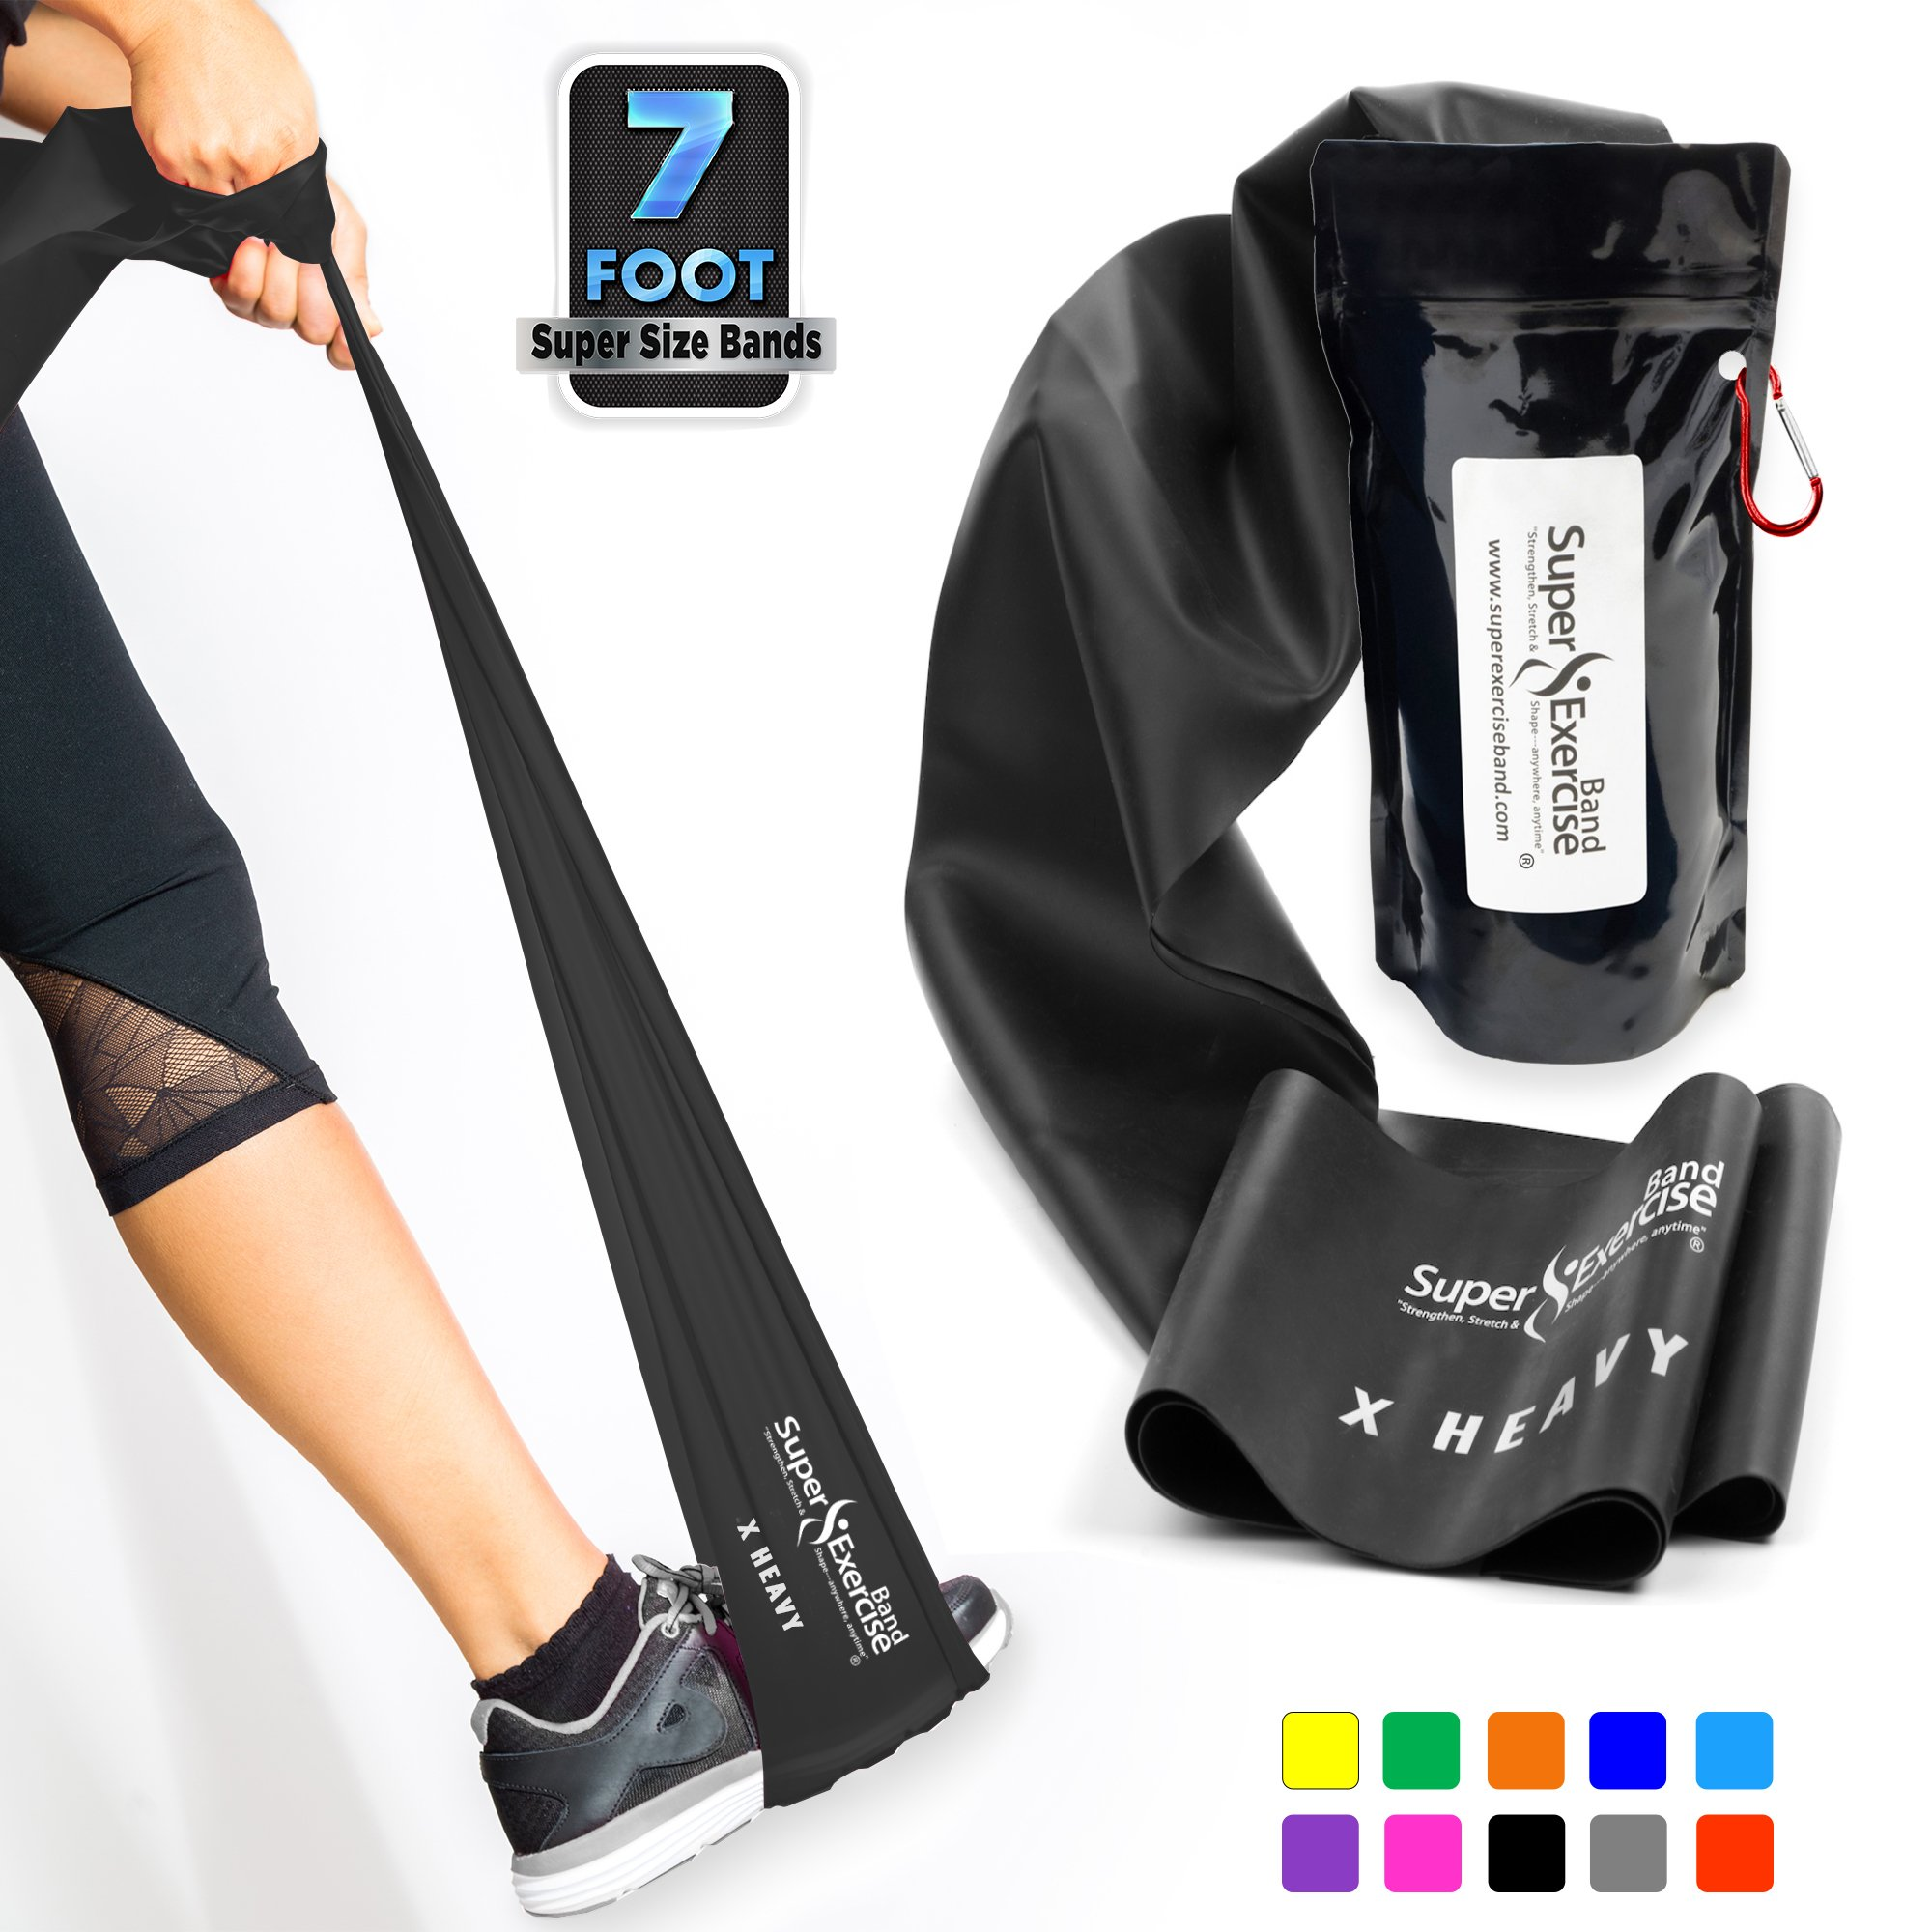 Super Exercise Band X Heavy Black 7 ft. Long Latex Free Resistance Bands Door Anchor Set, Carry Pouch, E-Book. for Home Gym, Strength Training, Physical Therapy, Yoga, Pilates, and Chair Workouts.